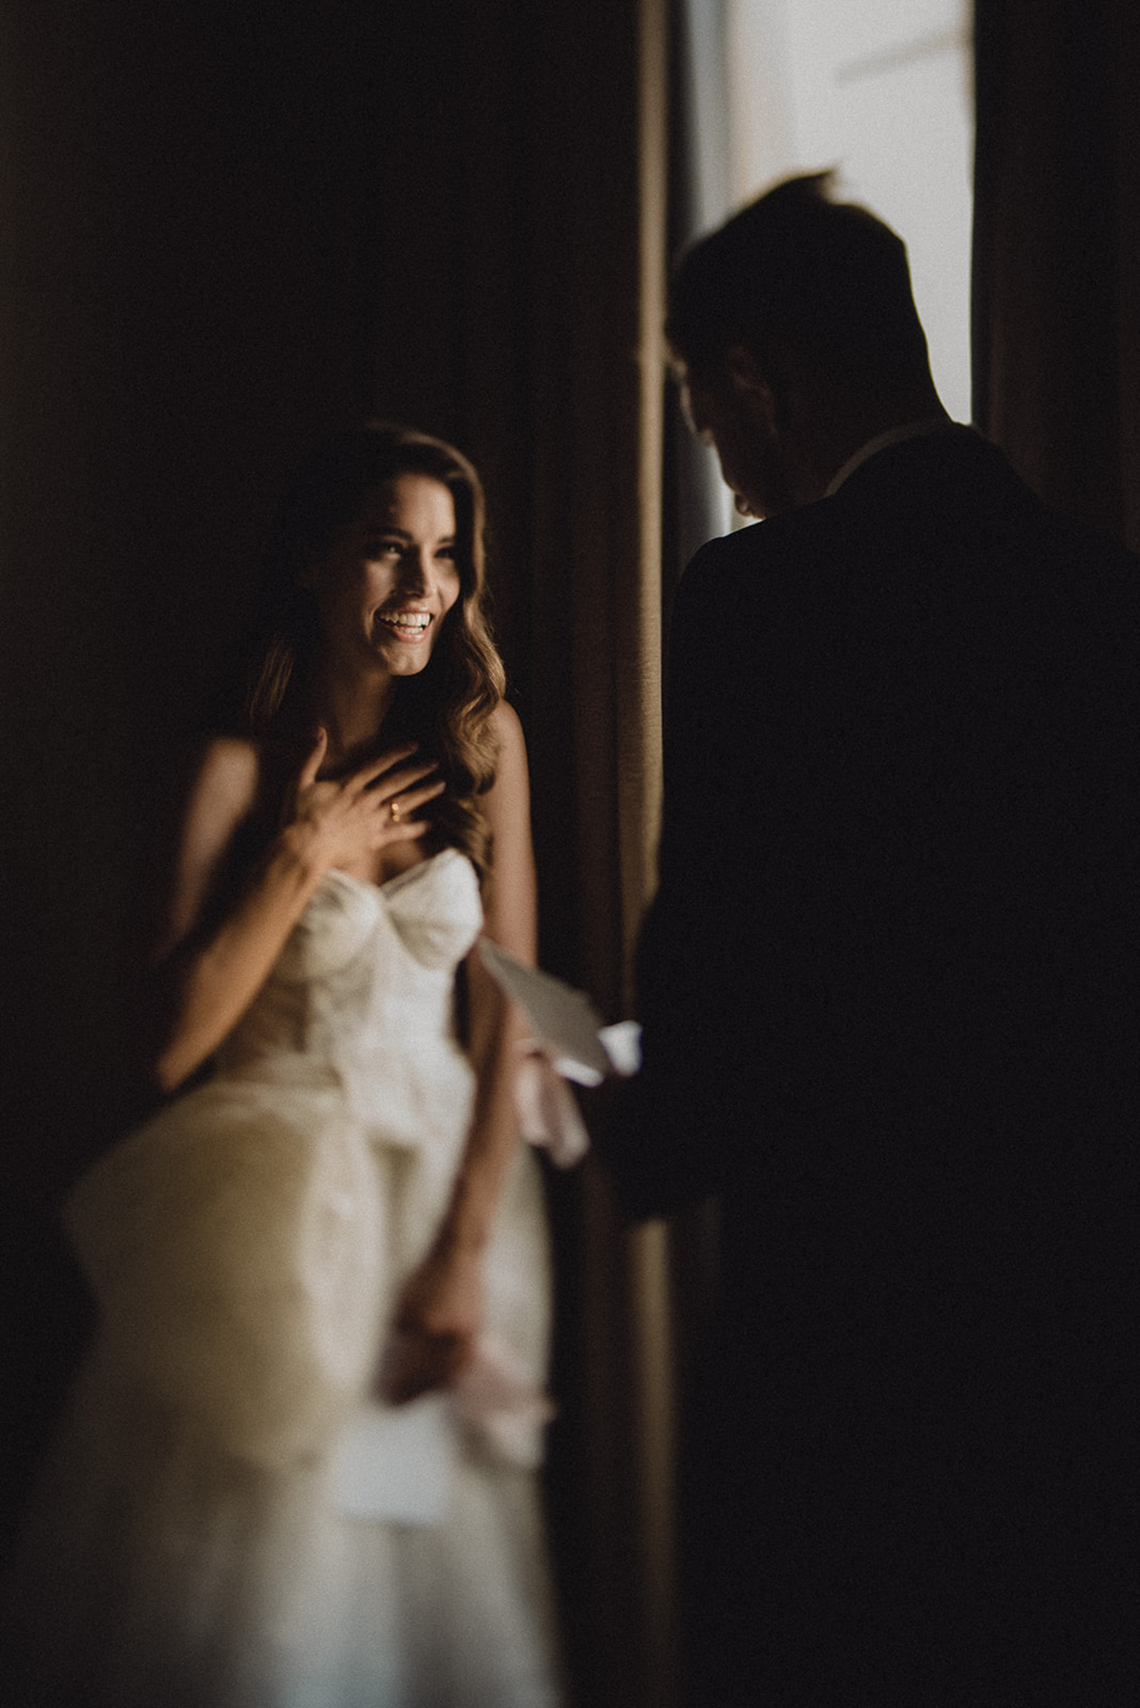 Swanky Croatian Hotel Holiday Elopement Inspiration – Nina Anic Photography 20